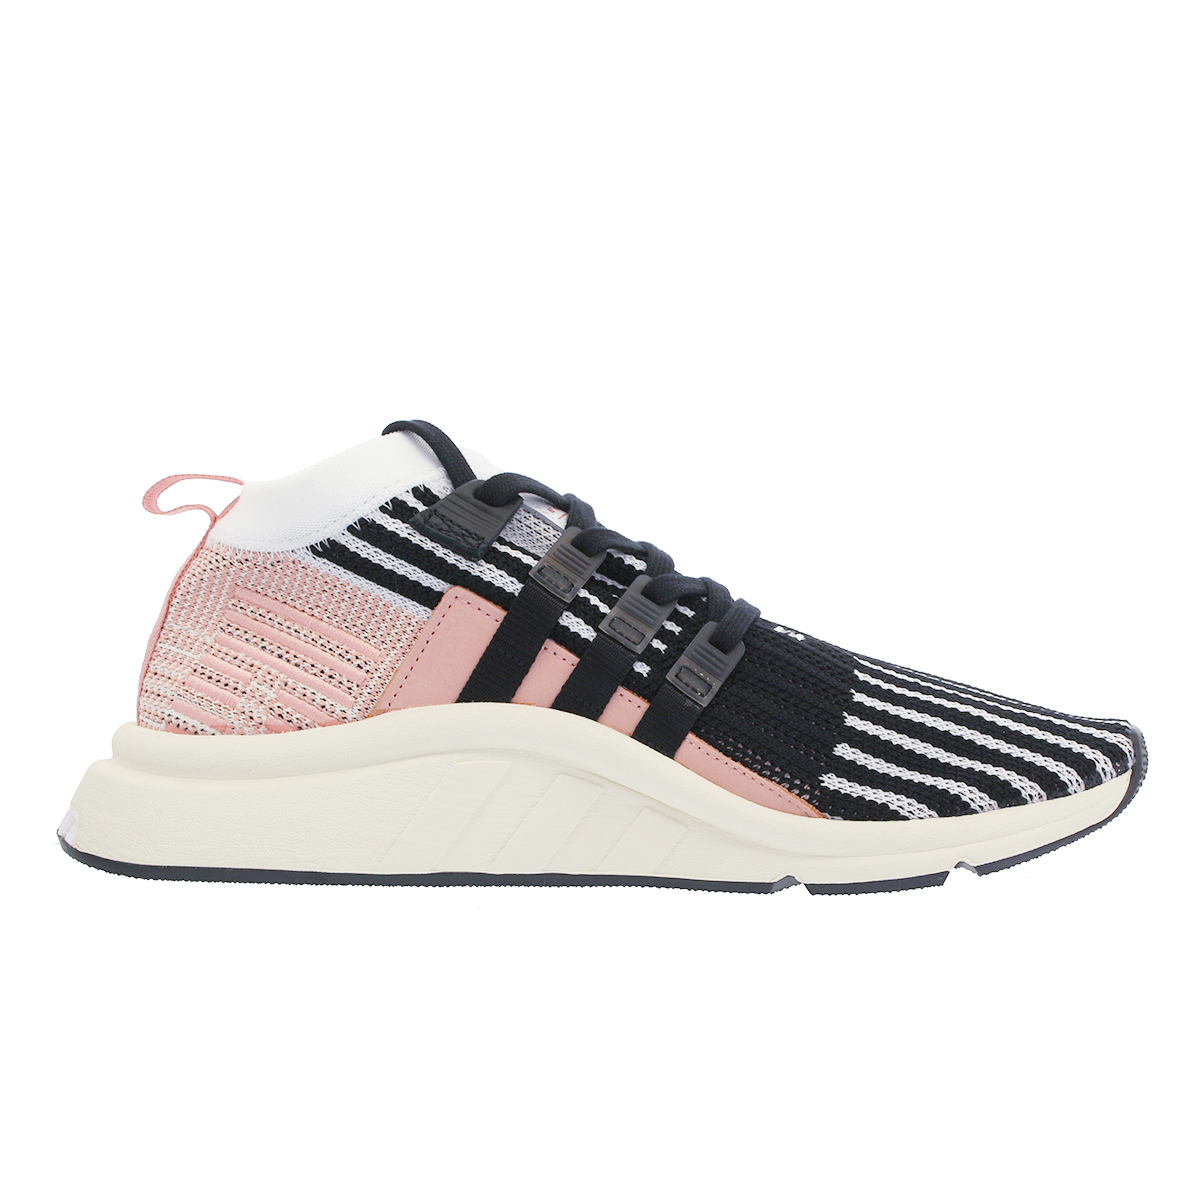 new style a74d2 06e00 adidas EQT SUPPORT MID ADV PK Adidas EQT support mid ADV PK RUNNING  WHITECORE BLACKTRACE PINK aq1048